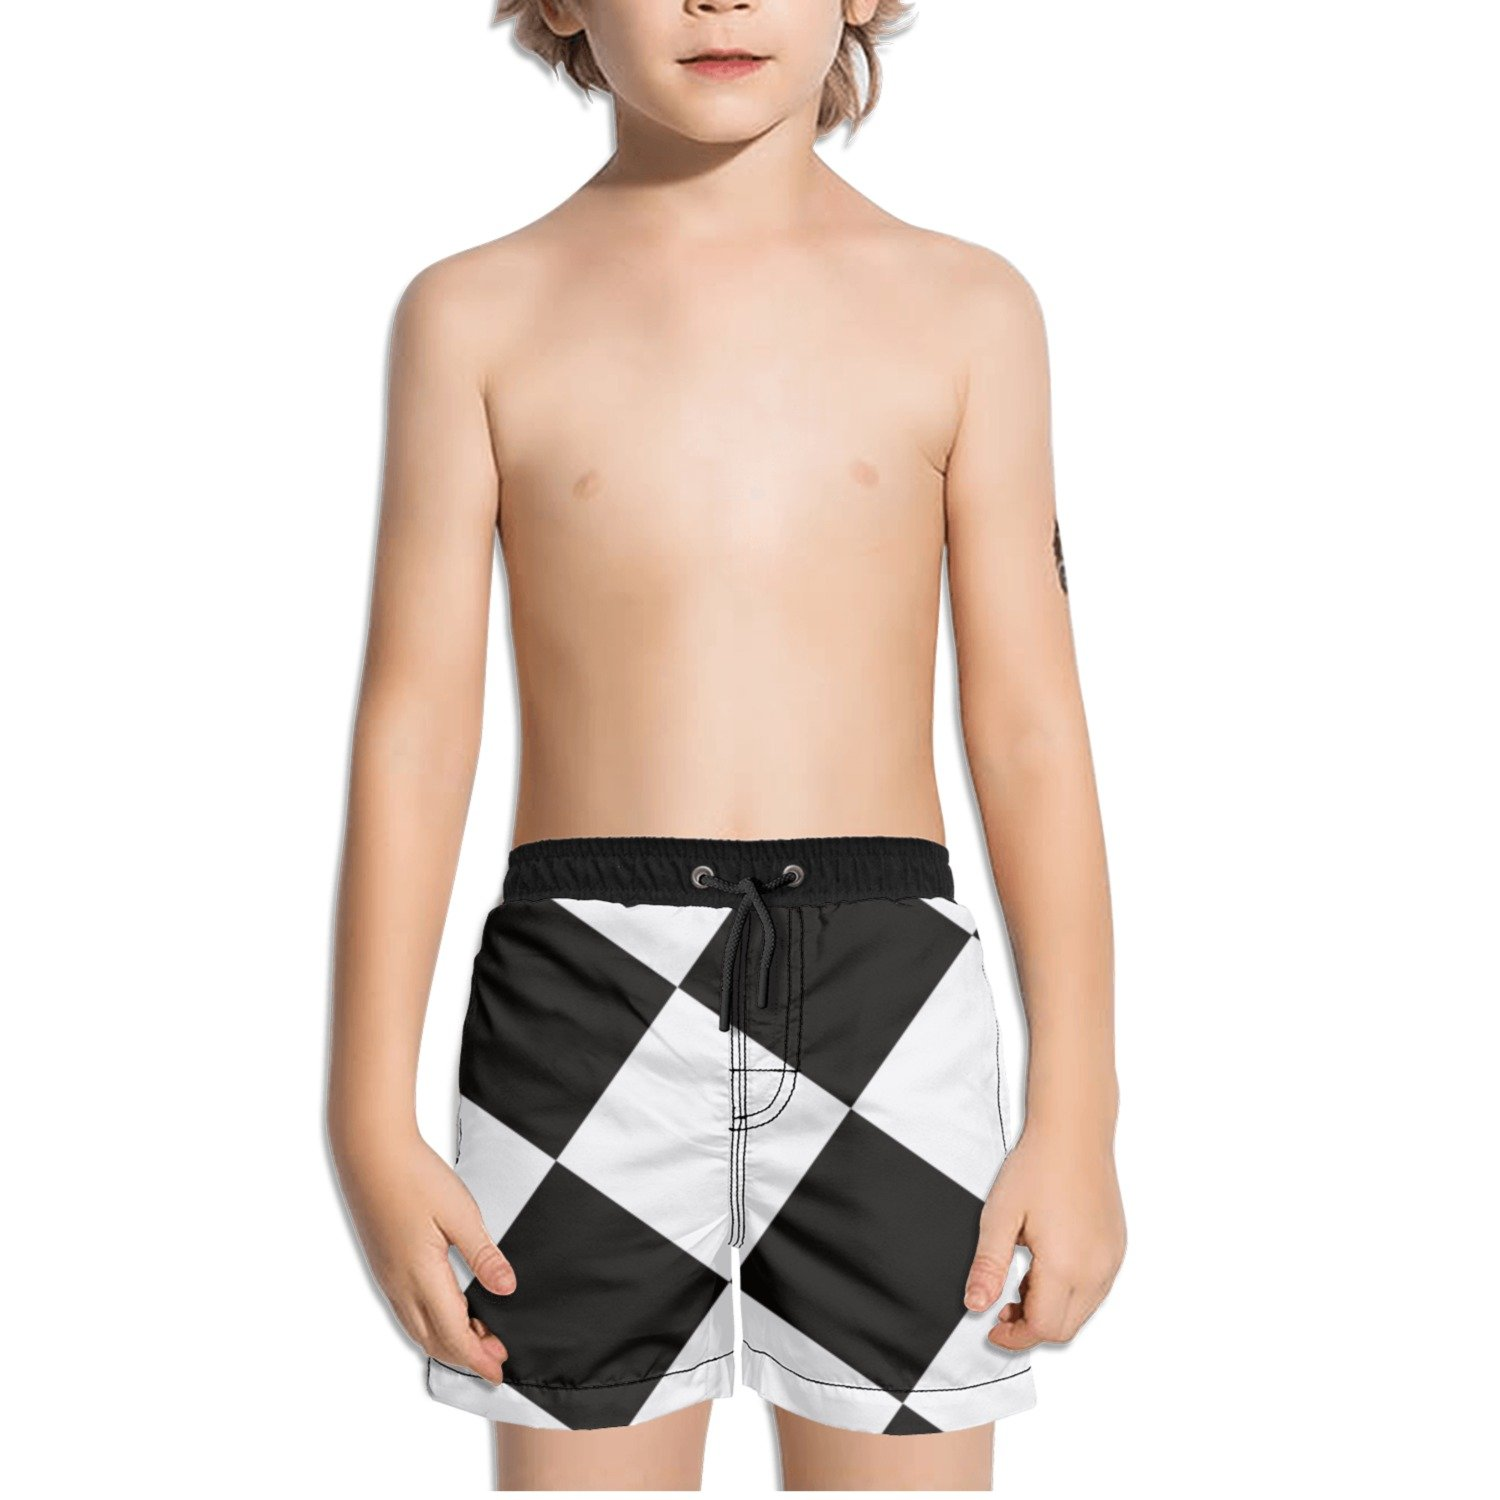 Ouxioaz Boys Swim Trunk Black White Checkered Square Beach Board Shorts